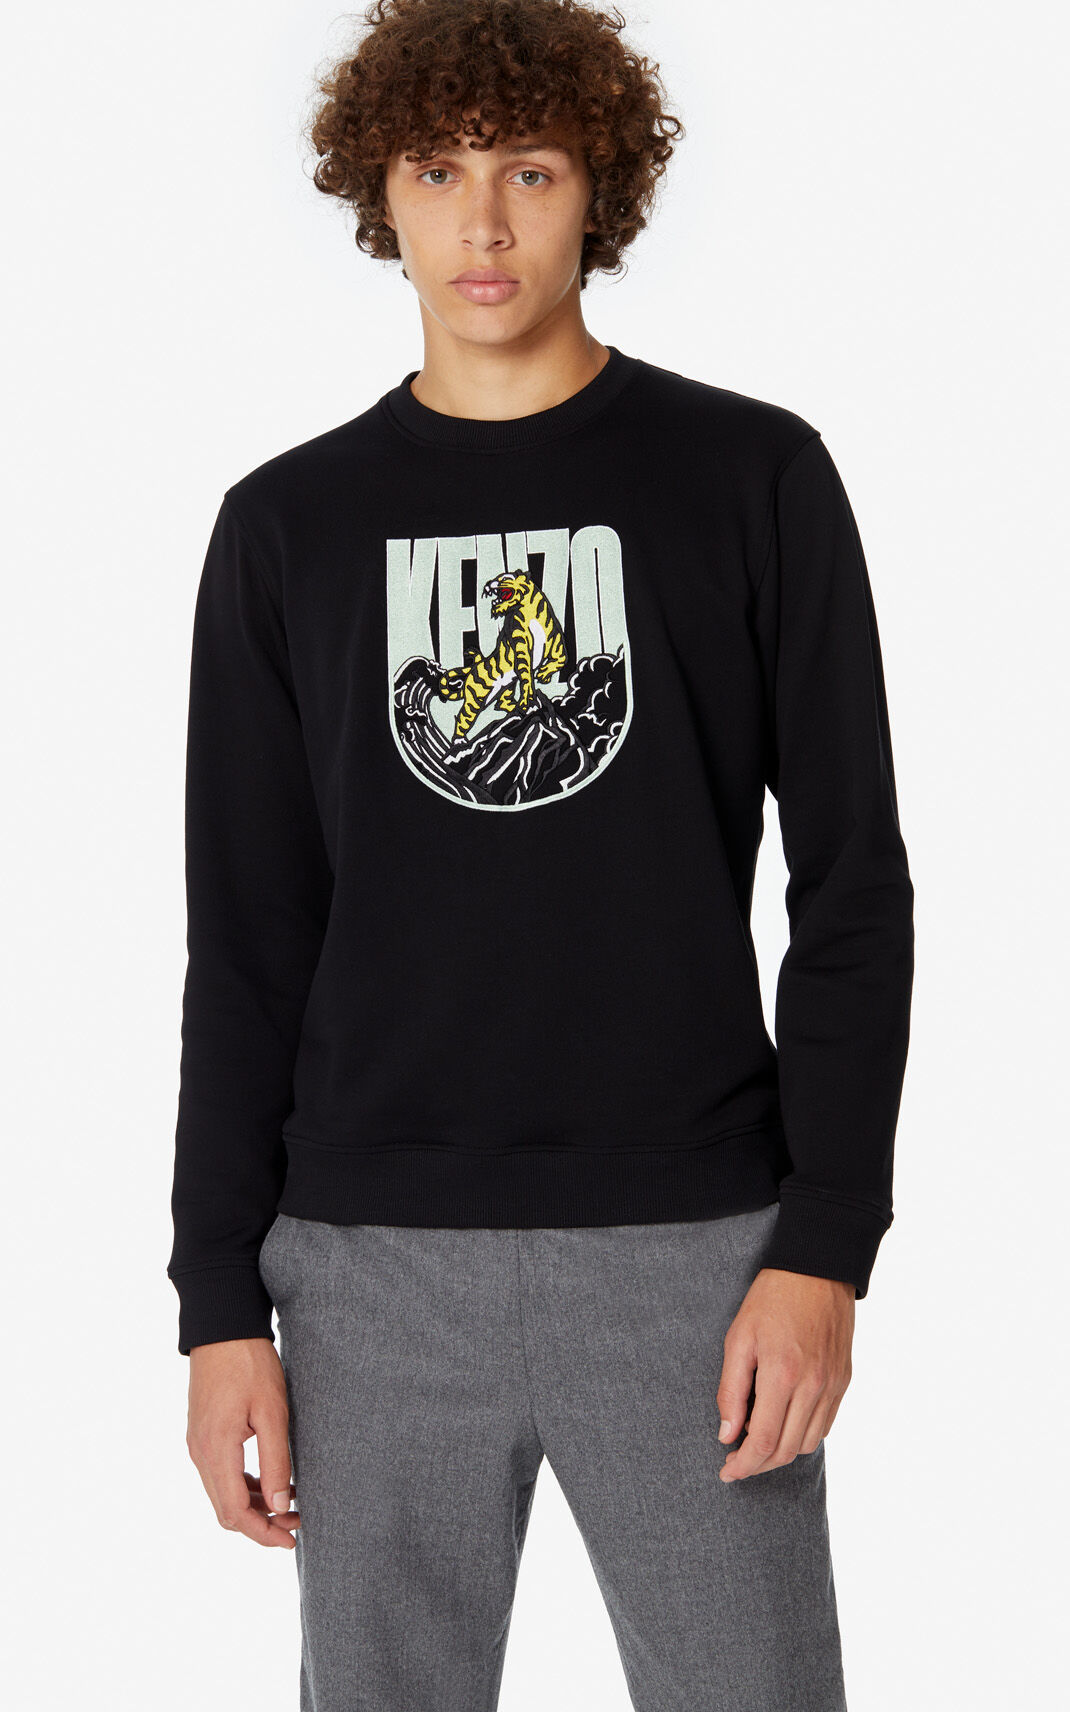 Tiger Mountain' 'Capsule Expedition' sweatshirt for Kenzo